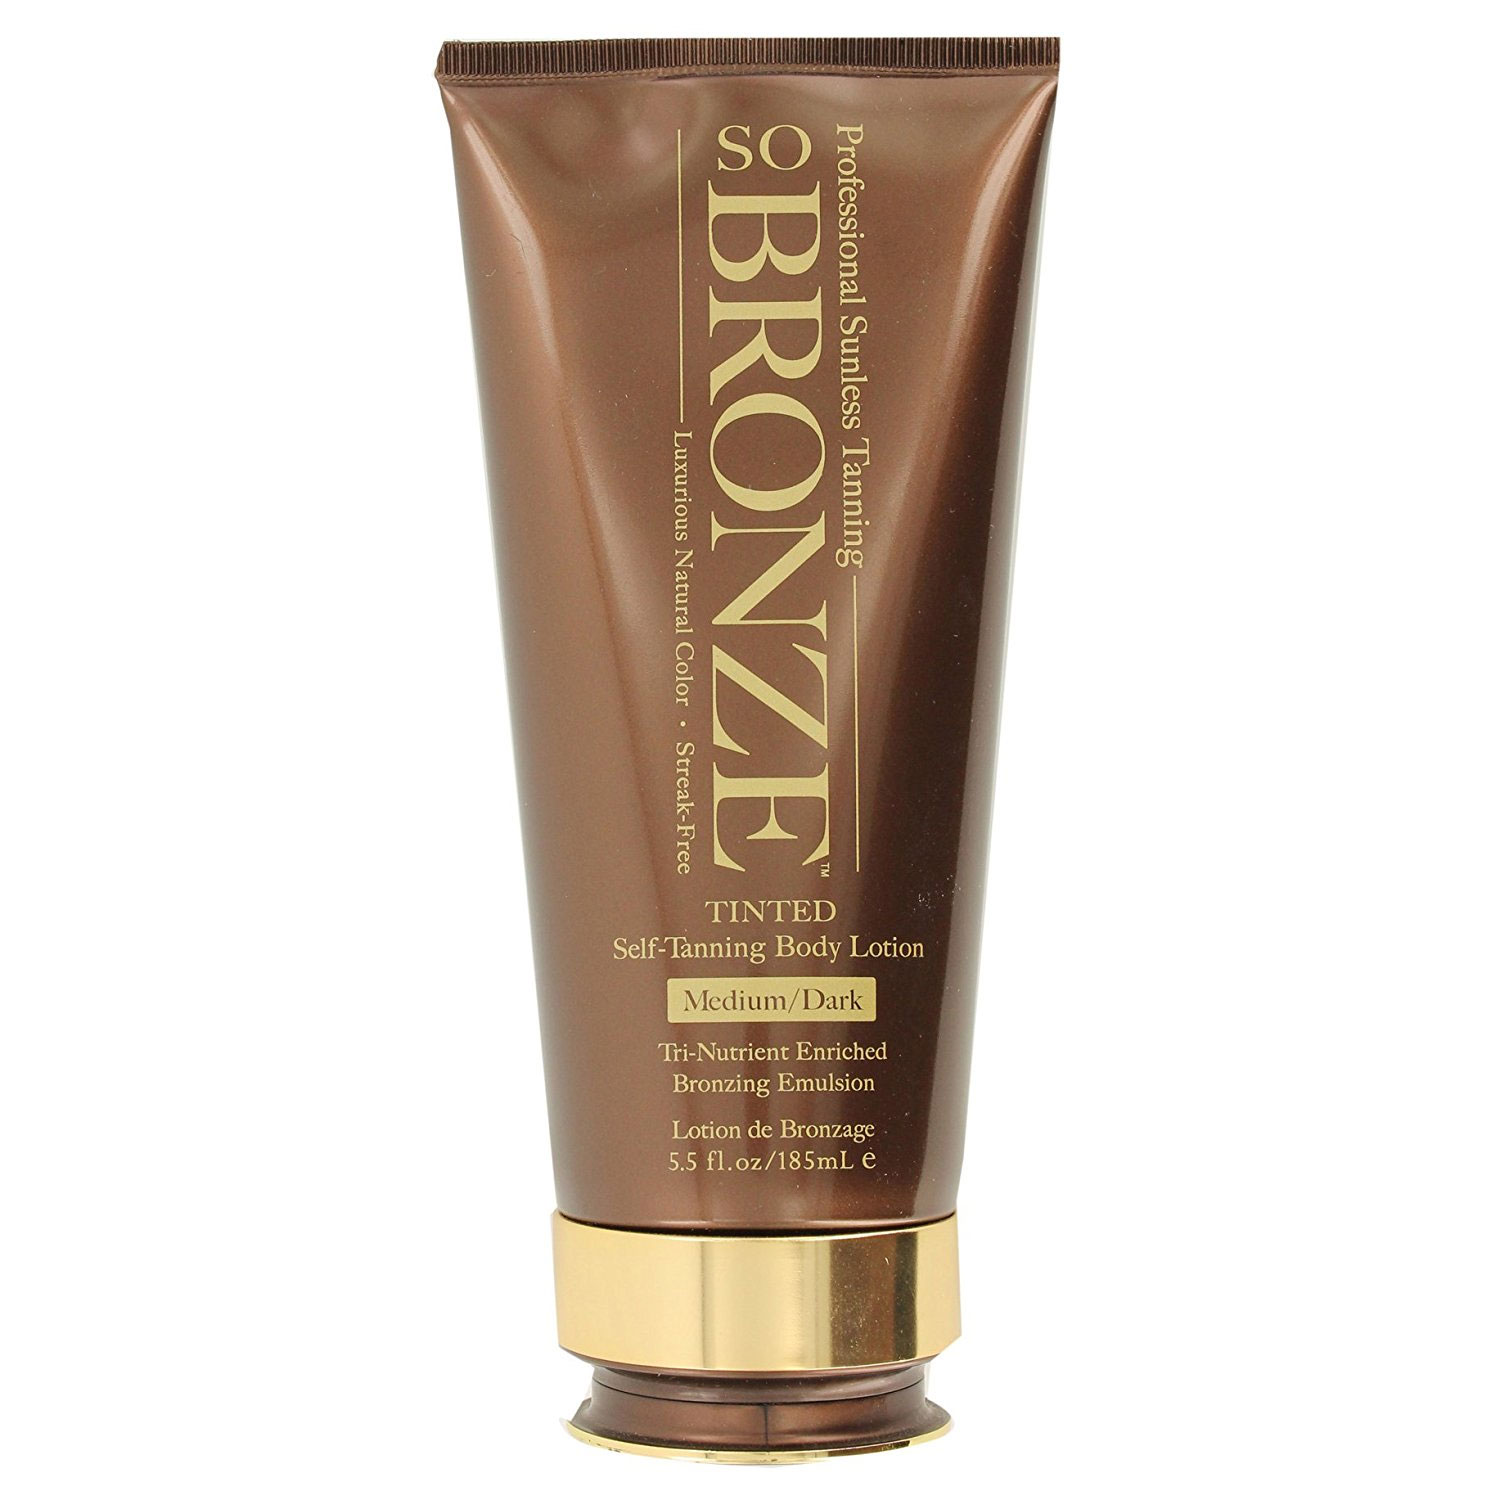 Image of Hempz So Bronze Medium/Dark Self Tanning Body Lotion - 5.5oz